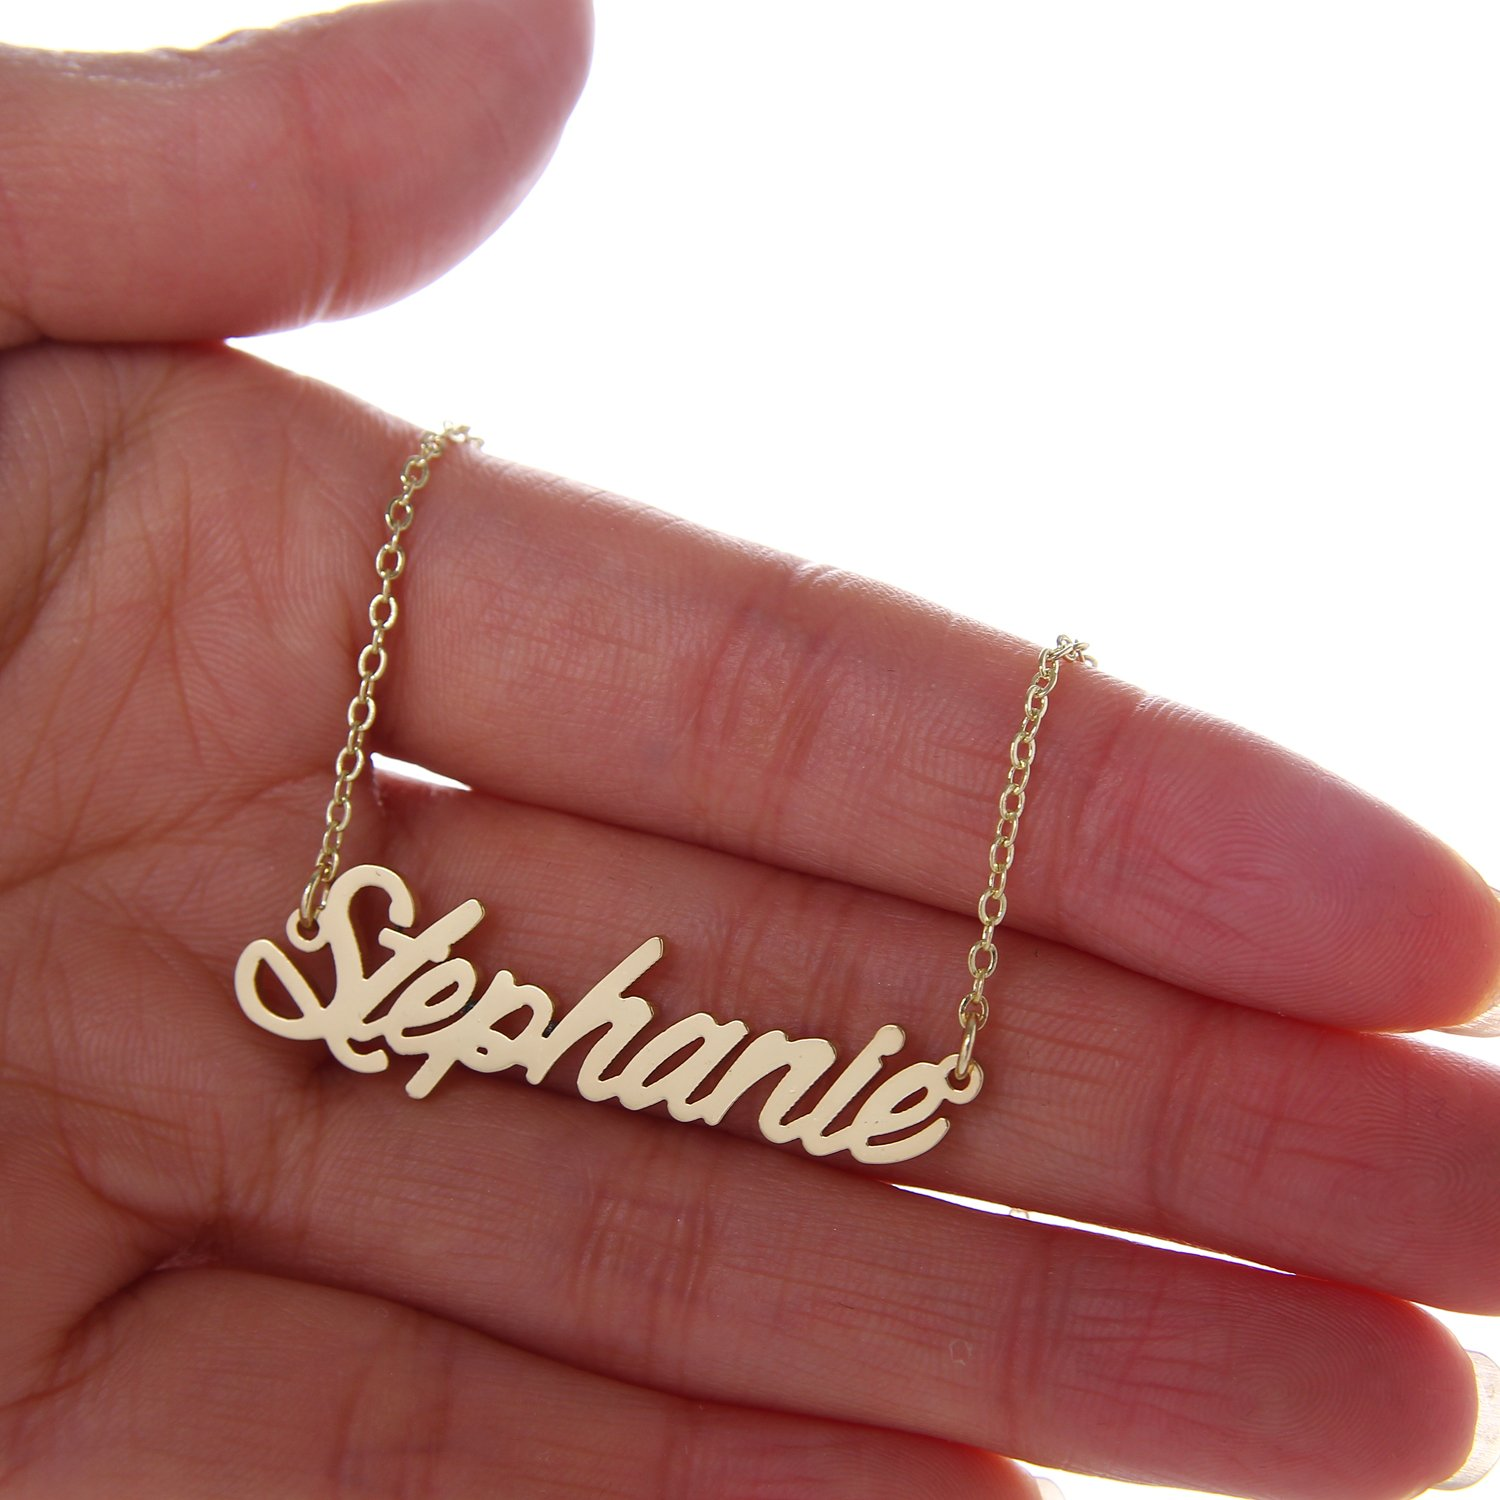 Amazoncom AOLO Unique Personalized Name Necklace Vintage Jewellery